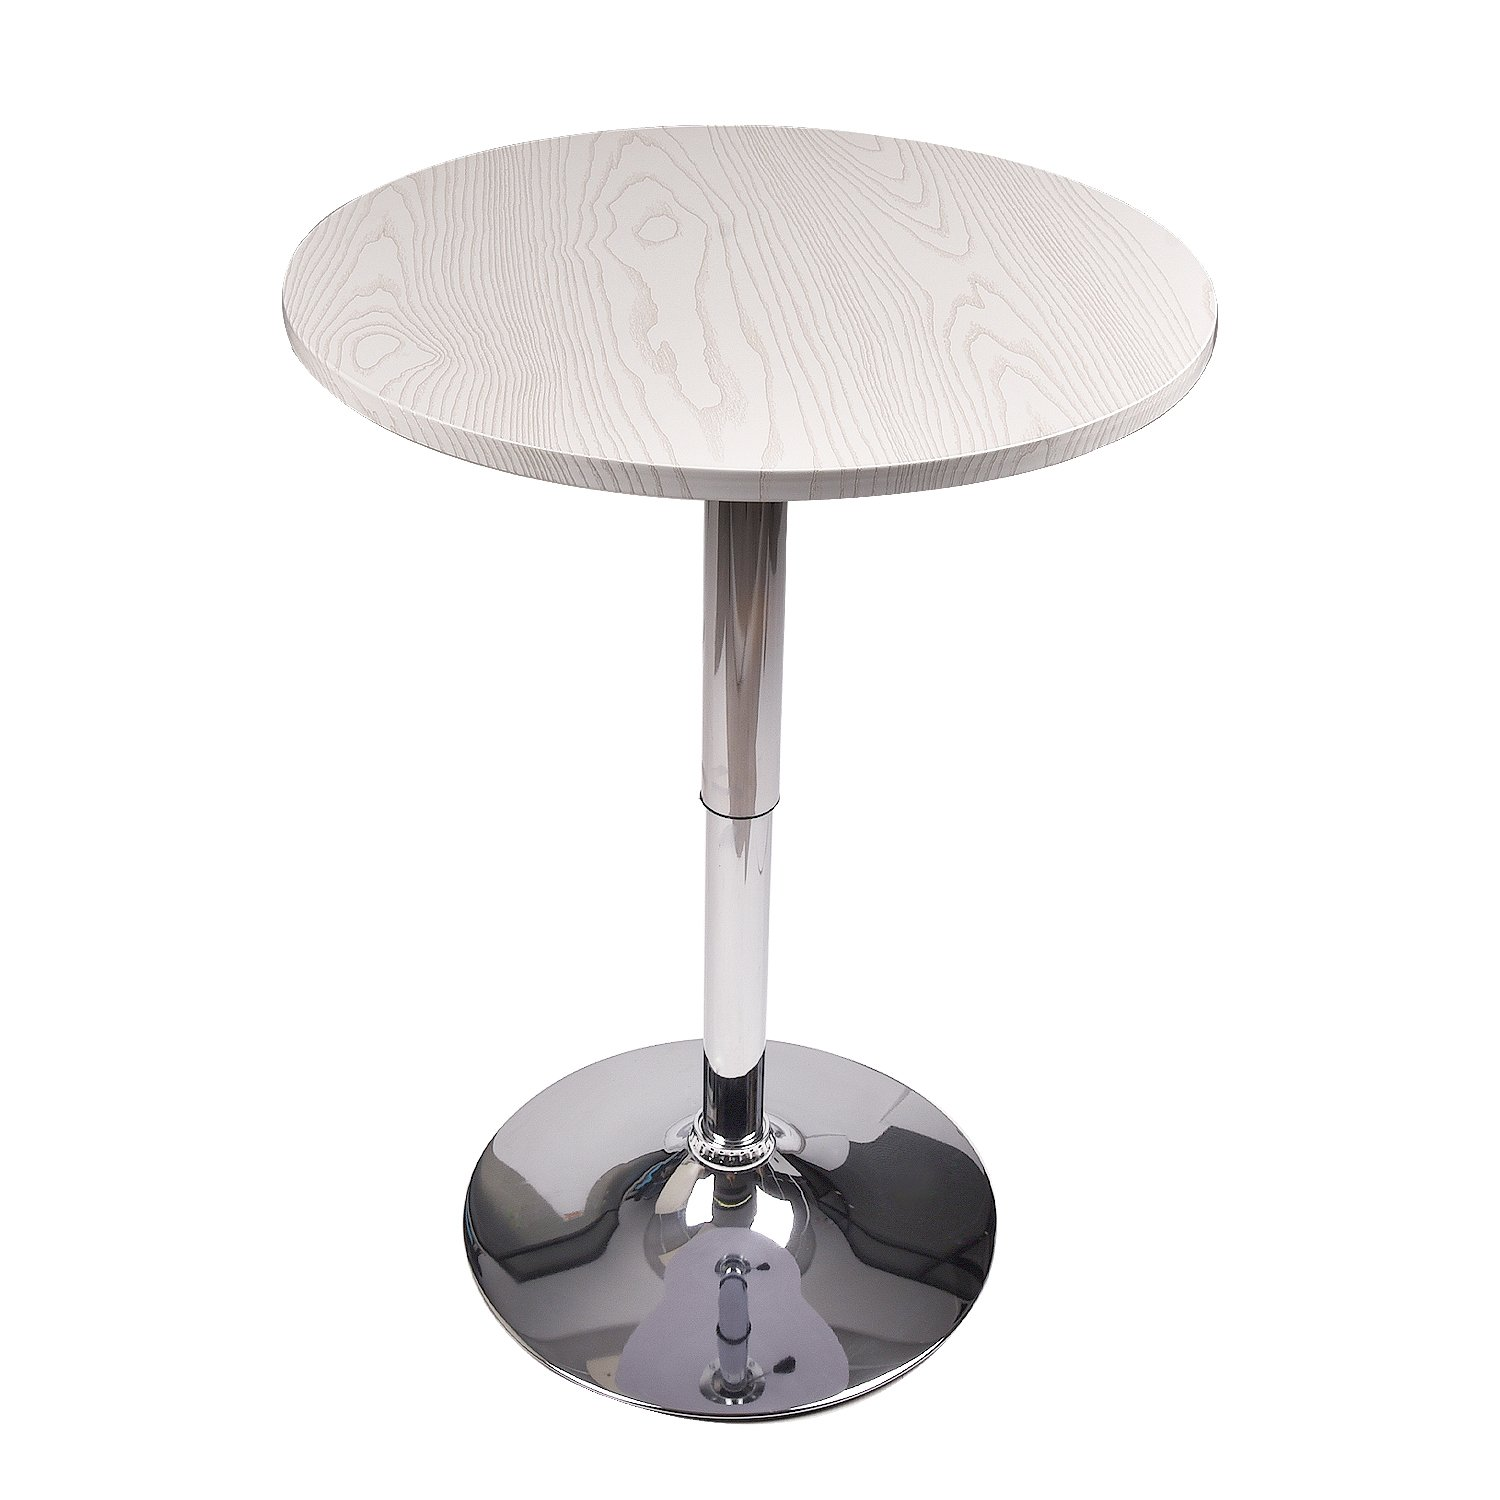 Adjustable Bar Table Swivel Round Pub Table MDF Top with Base for Home Kitchen Bistro